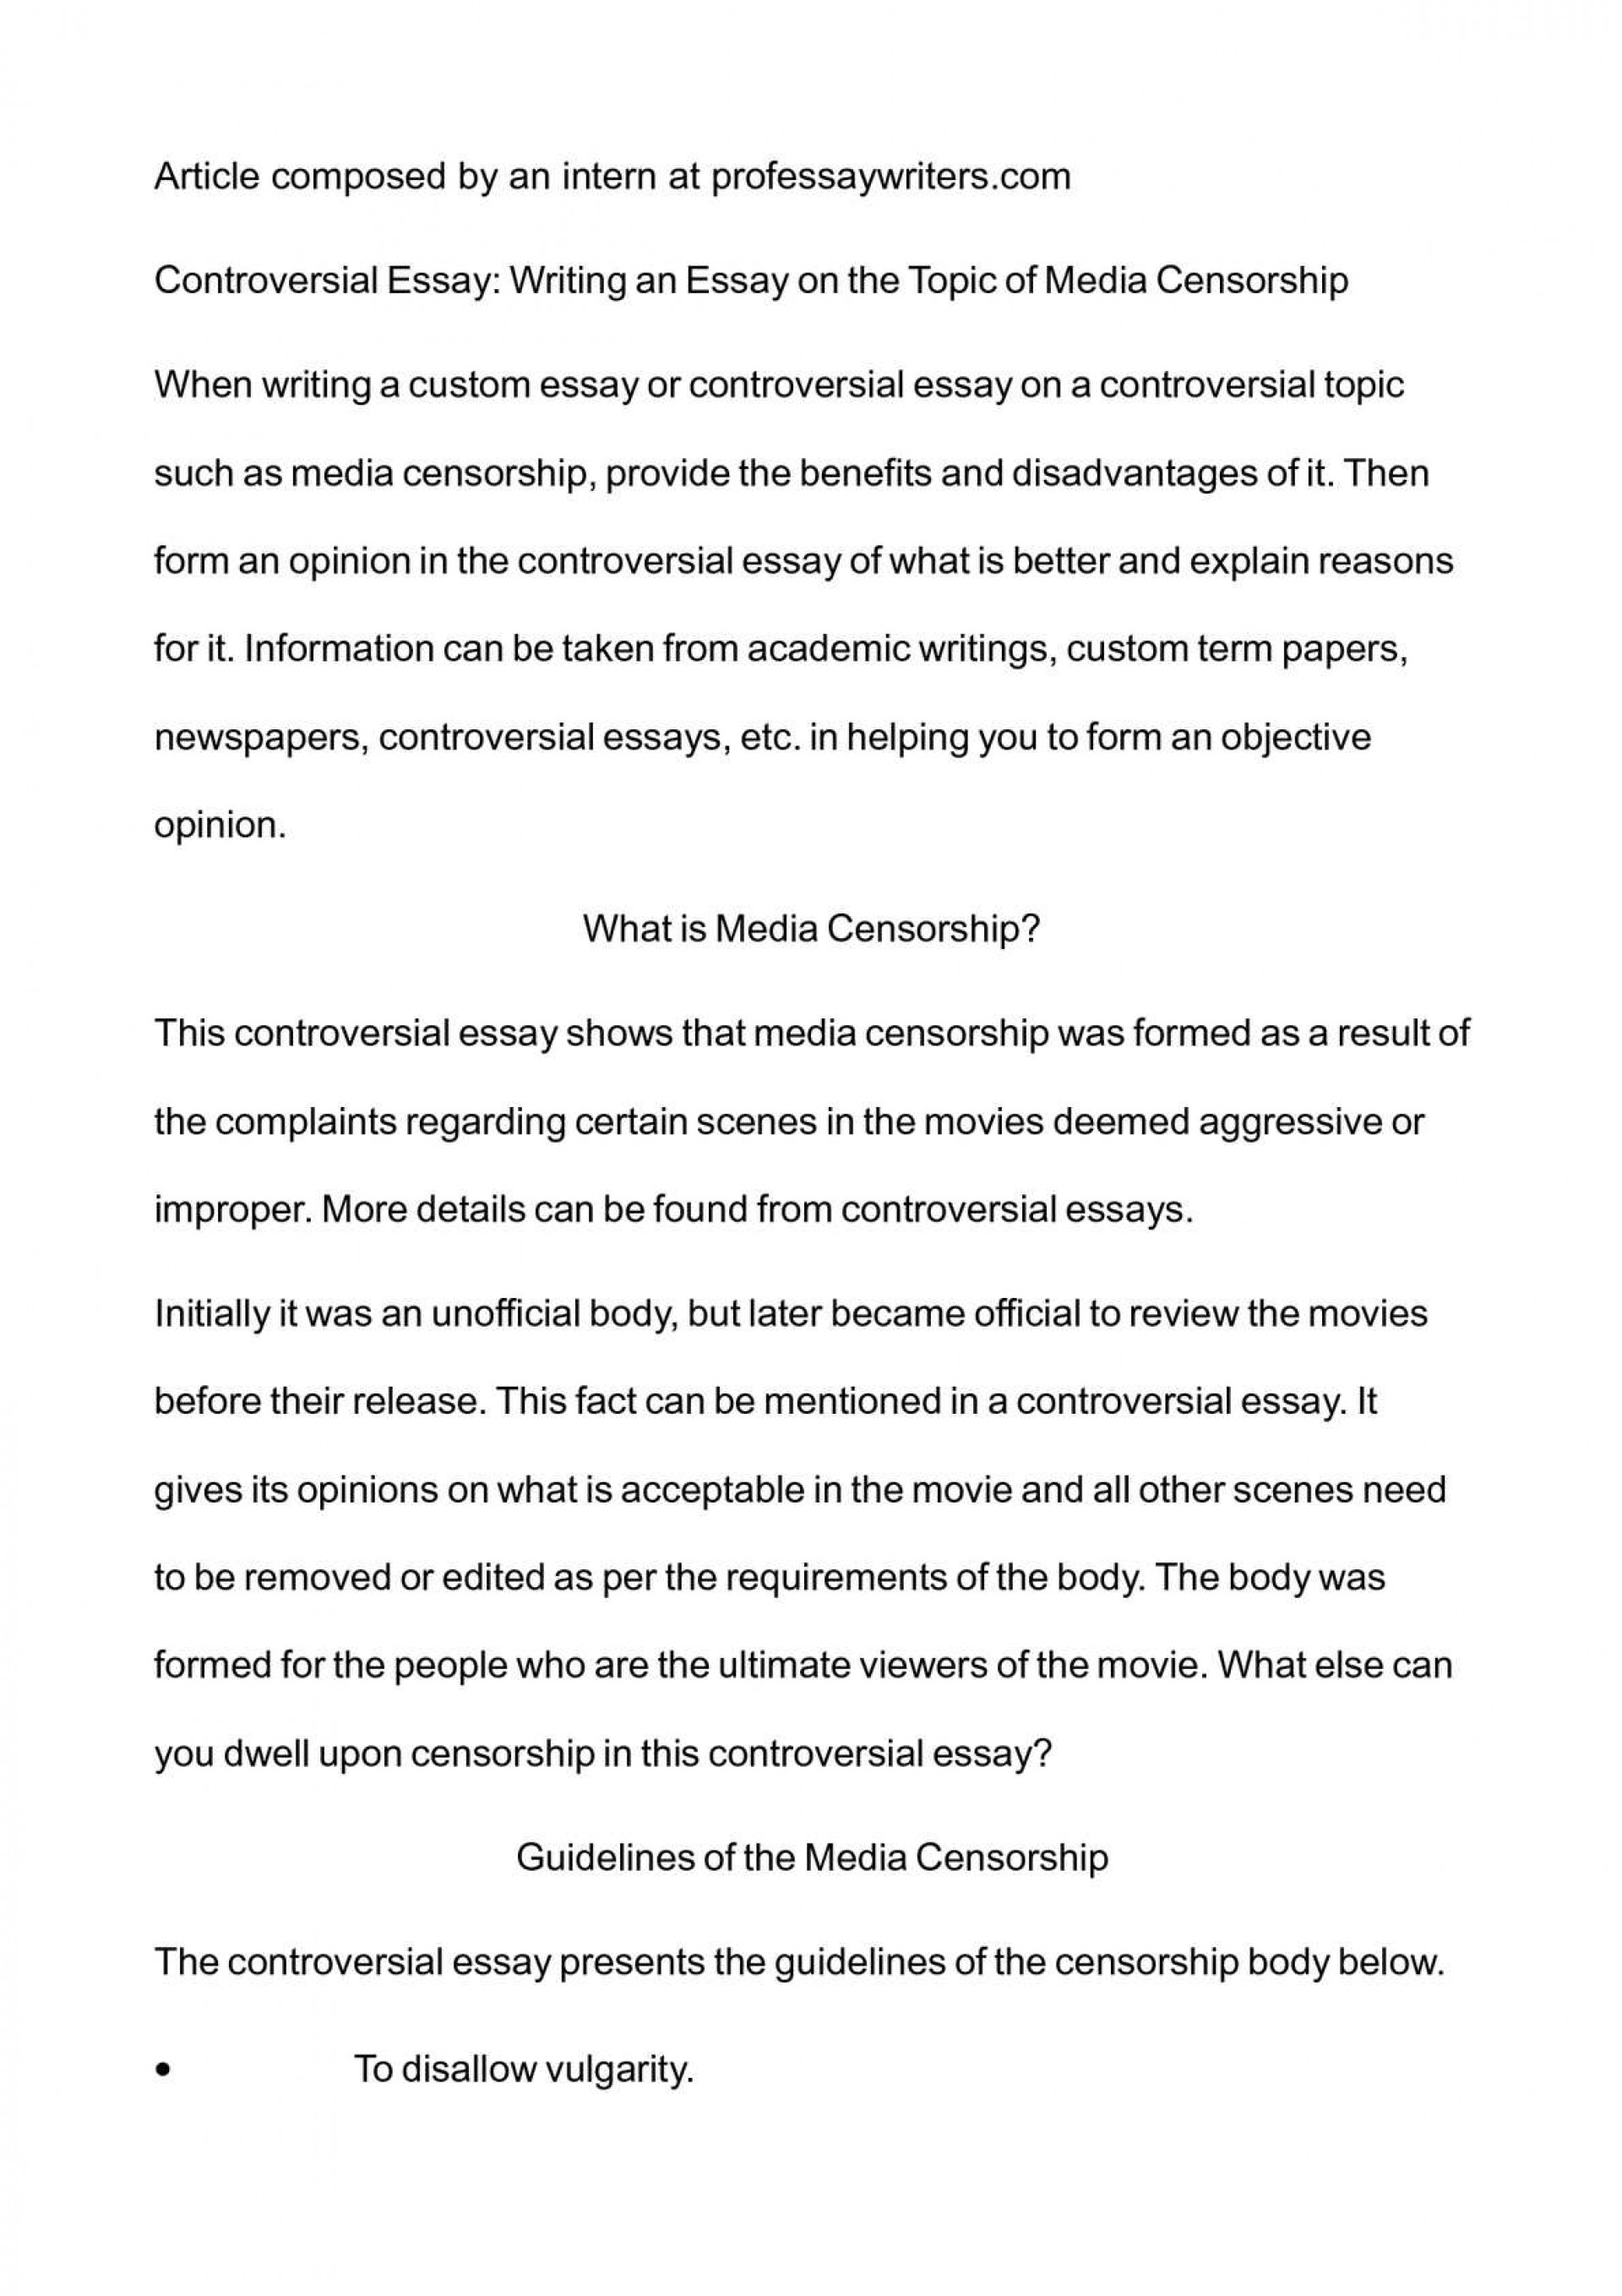 008 Essay Example Controversial Best Topics For High School Students Outline Format On Immigration 1920